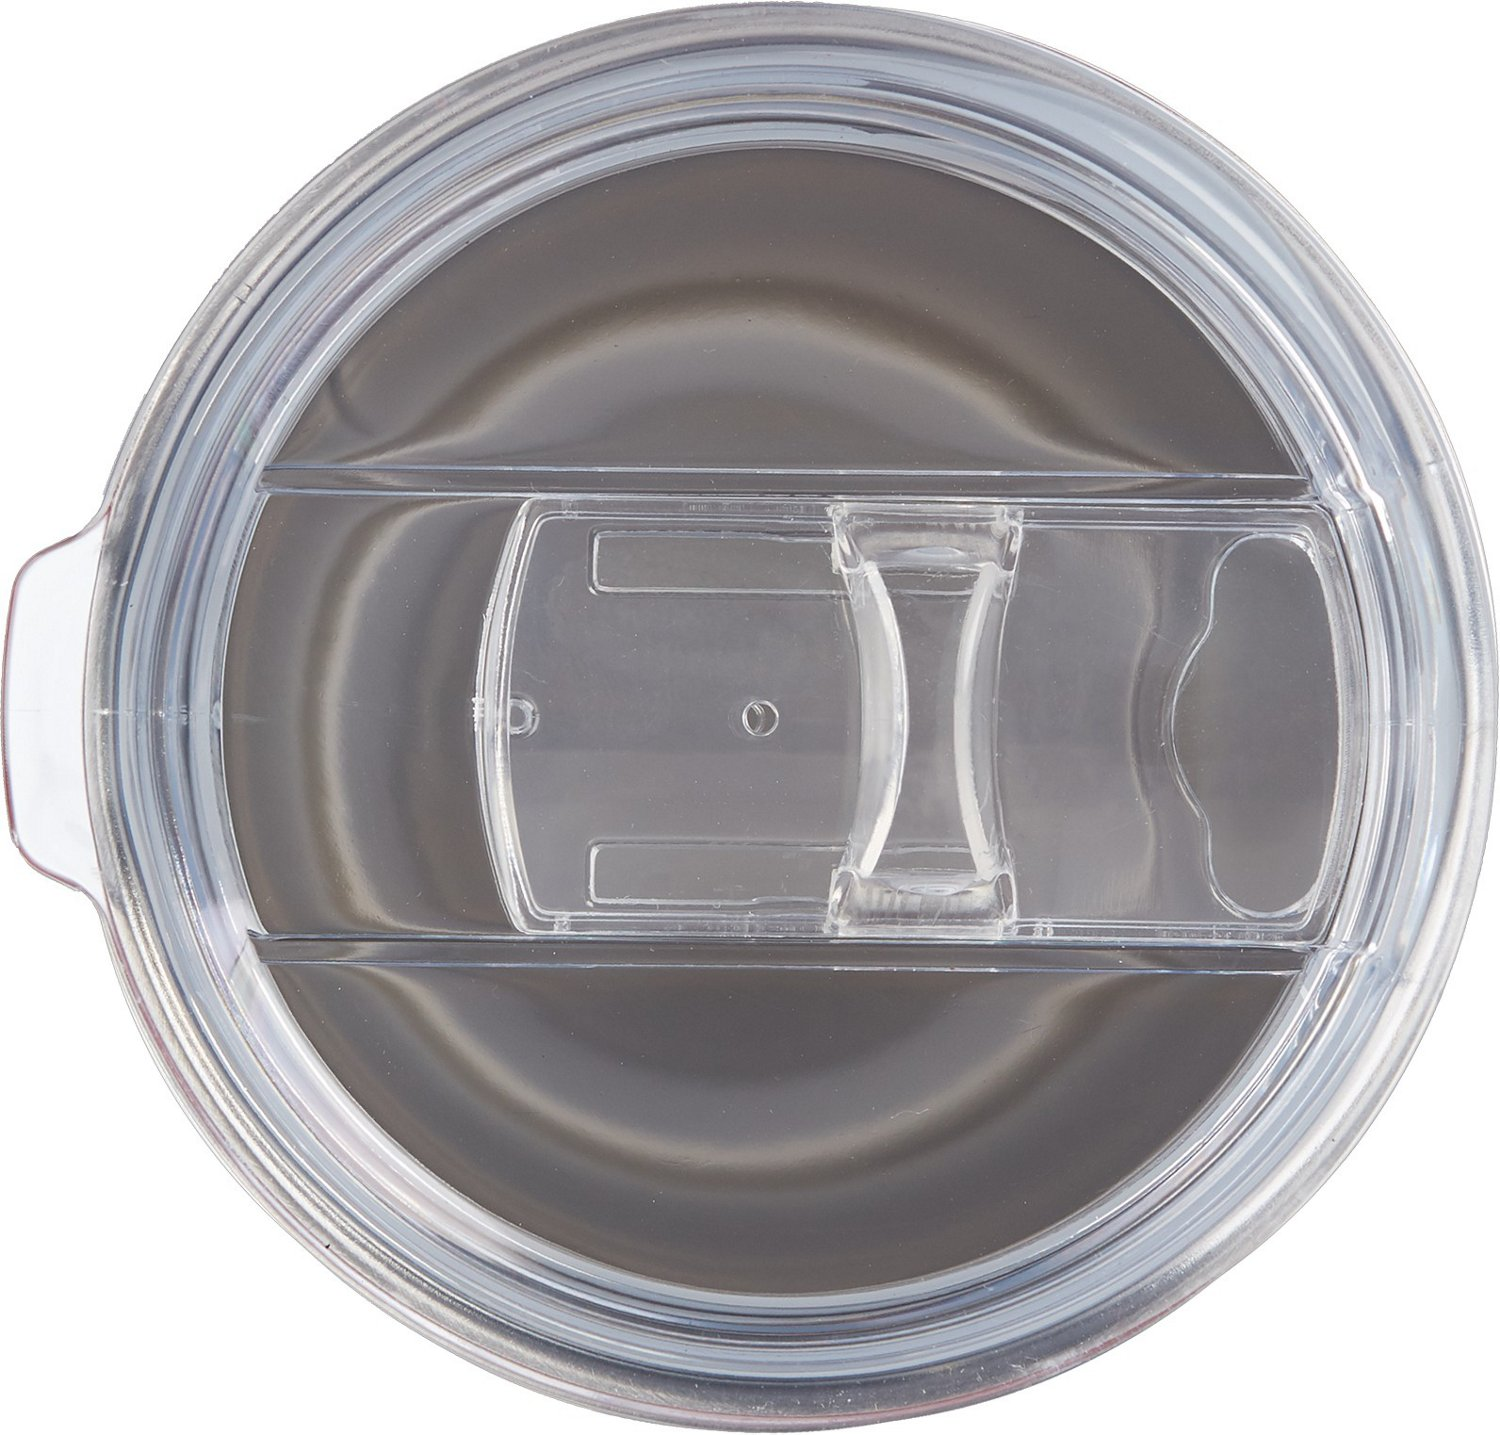 Display product reviews for Boelter Brands University of Georgia GMD Ultra TMX6 30 oz. Tumbler